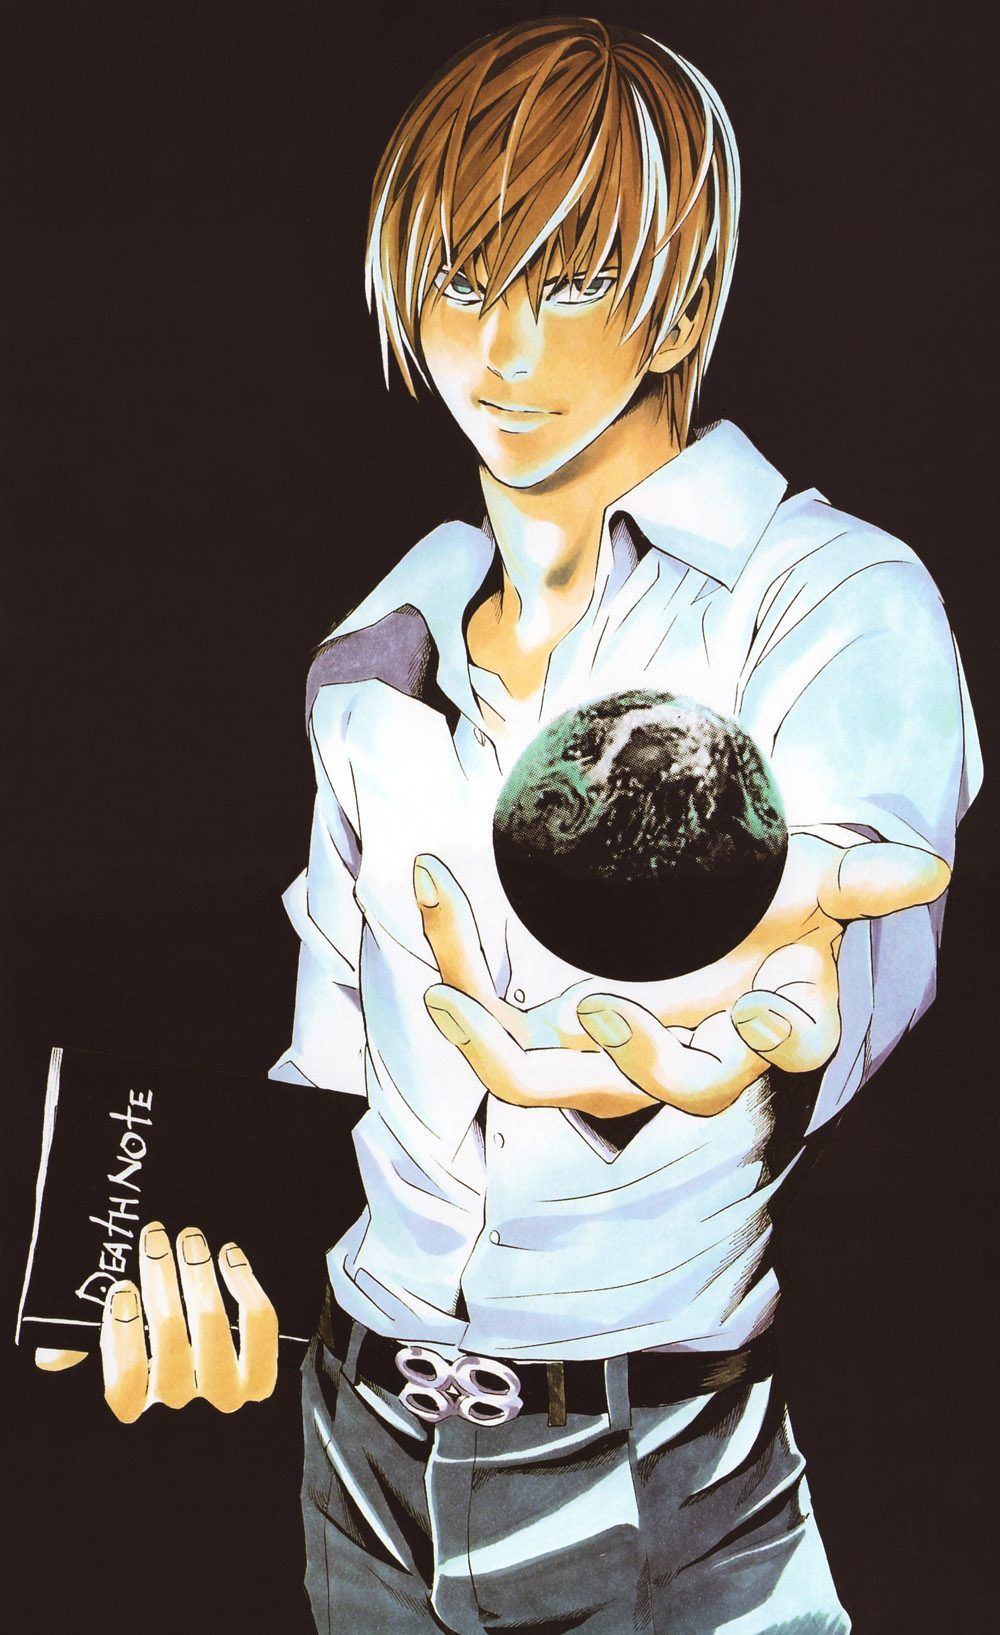 The Art of Takeshi Obata in 2020 Death note light, Death